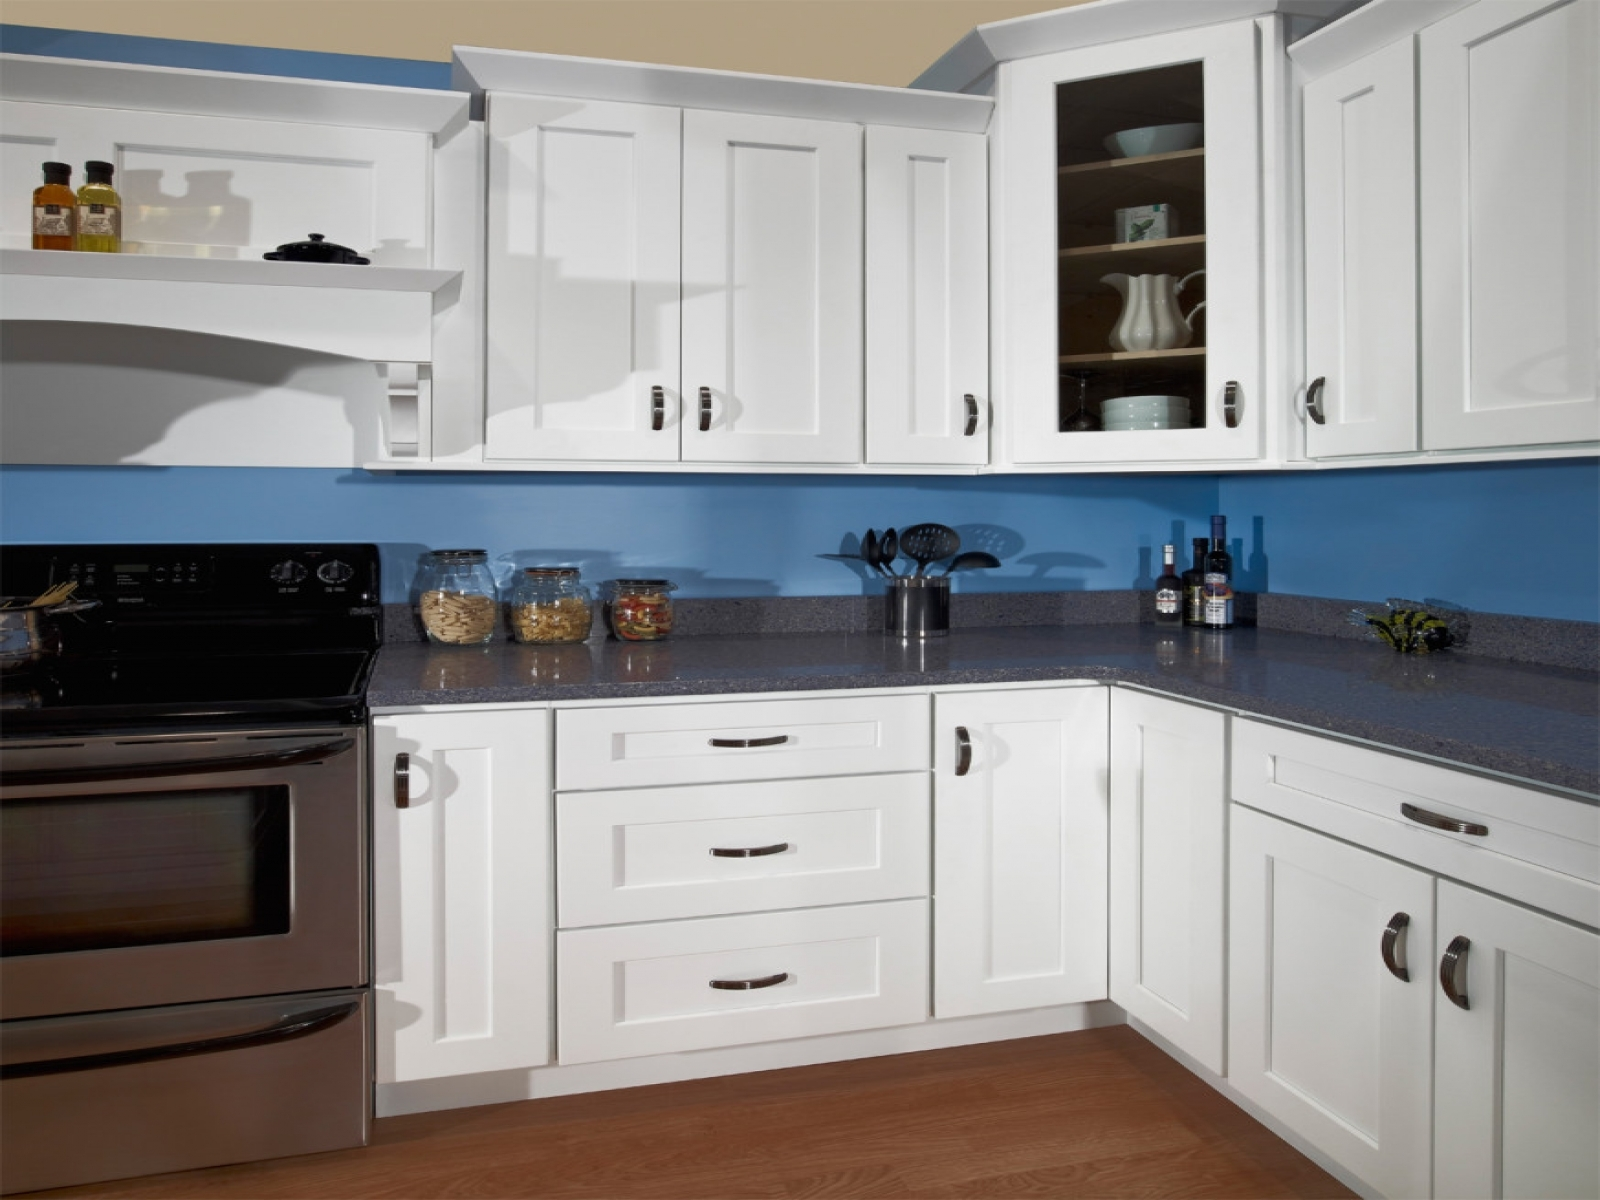 Toe Kick Boards For Kitchen Cabinets Kitchen Cabinet